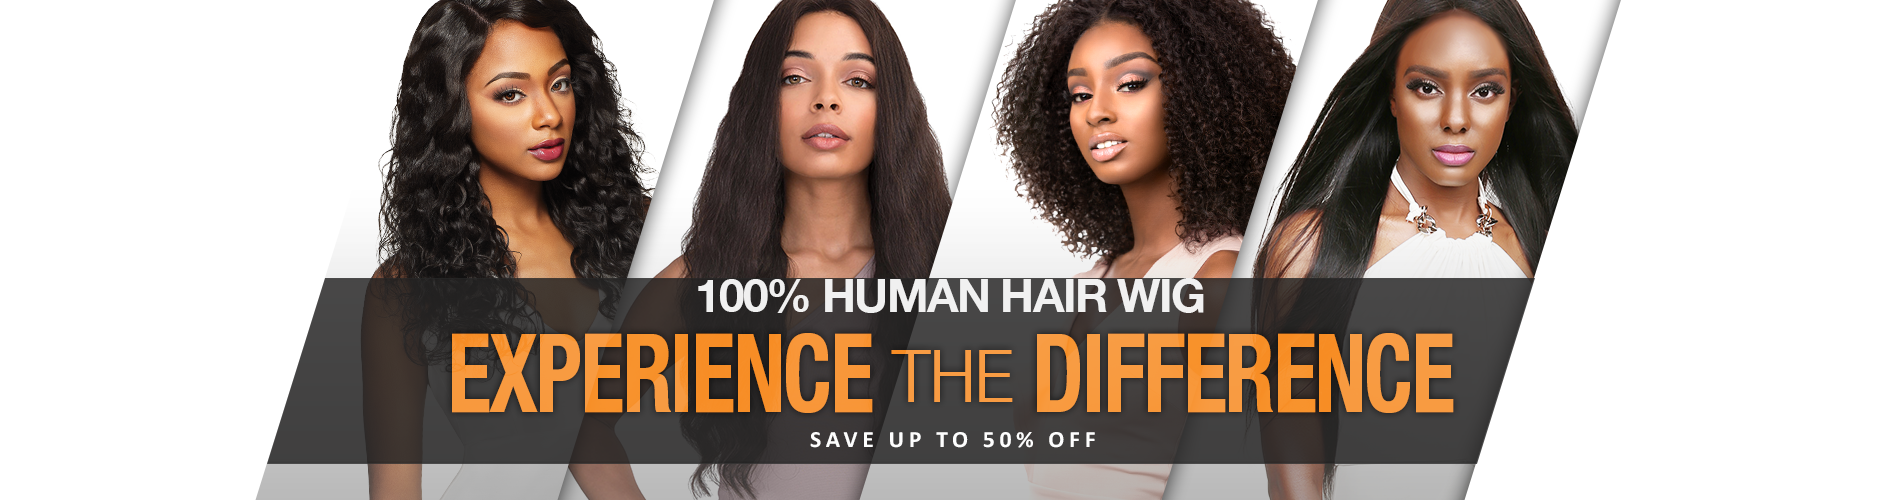 EXPERIENCE the DIFFERENCE! - 100% HUMAN HAIR WIGS